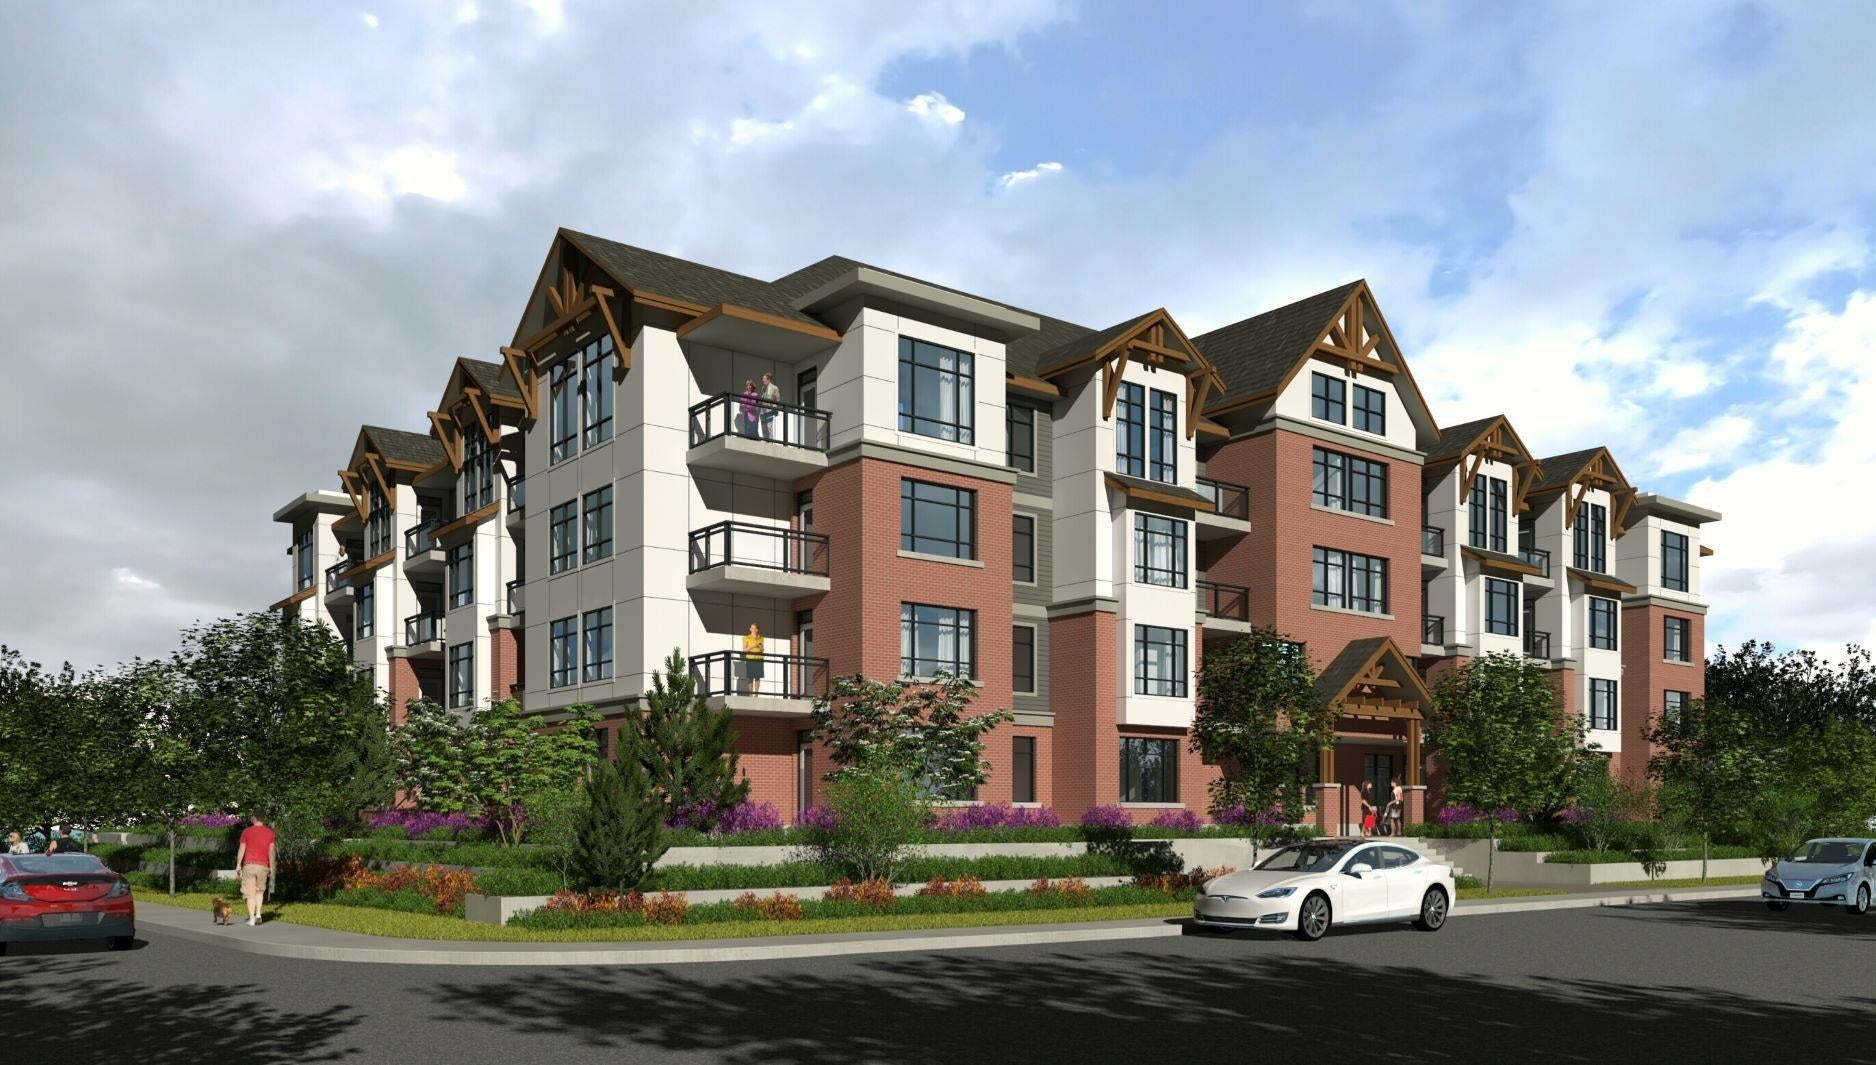 216 19945 BRYDON CRESCENT - Langley City Apartment/Condo for sale, 2 Bedrooms (R2620706) - #1